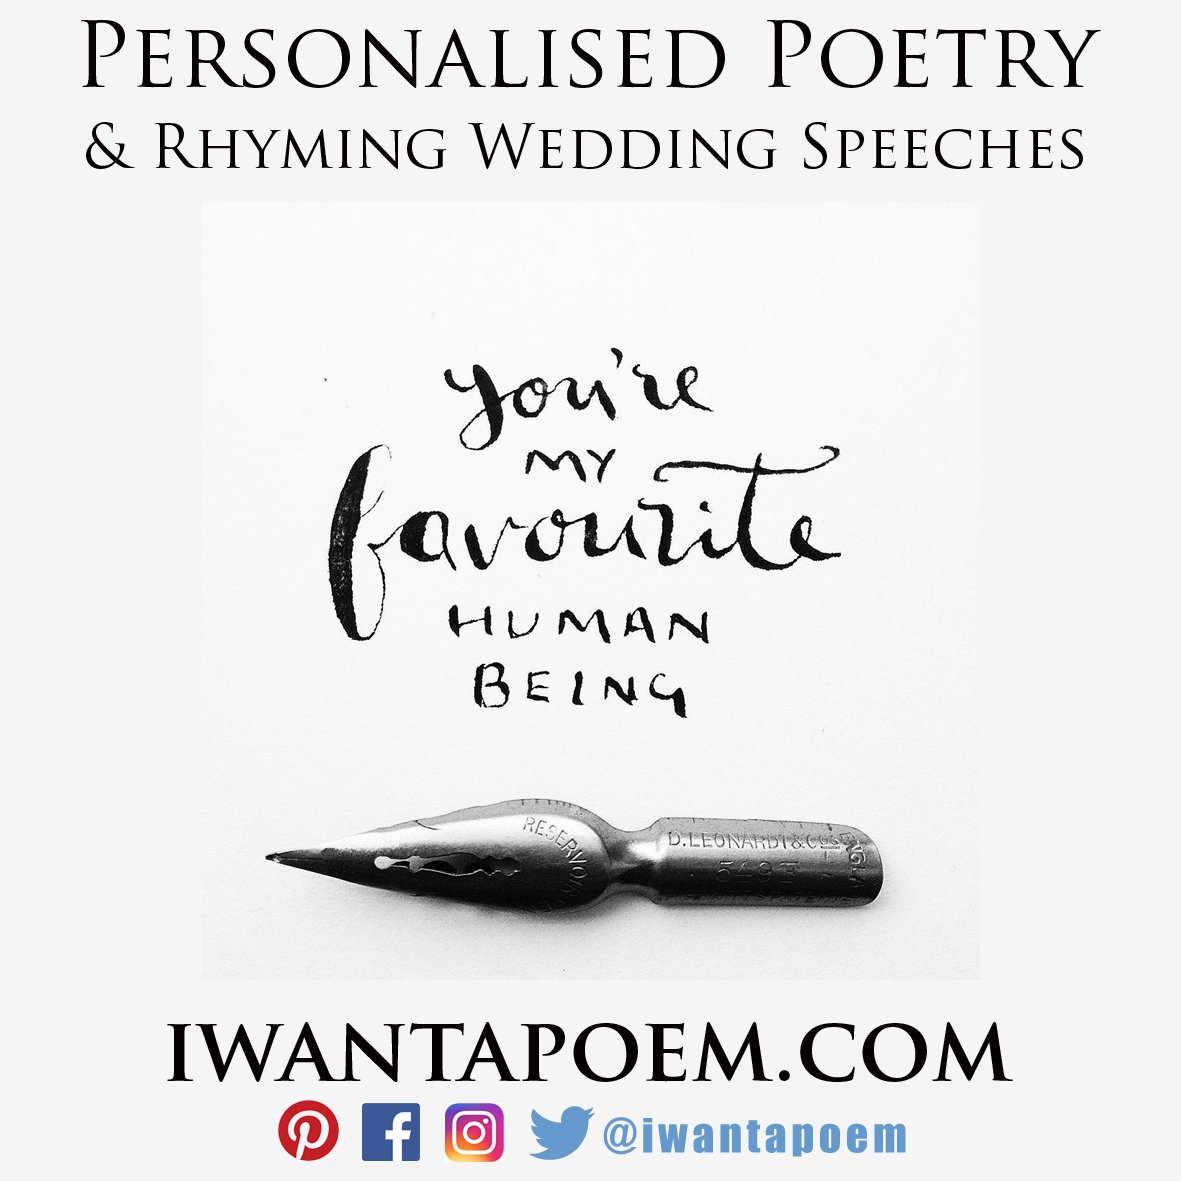 international custom poetry service - personalized poems by Amy @IWantAPoem